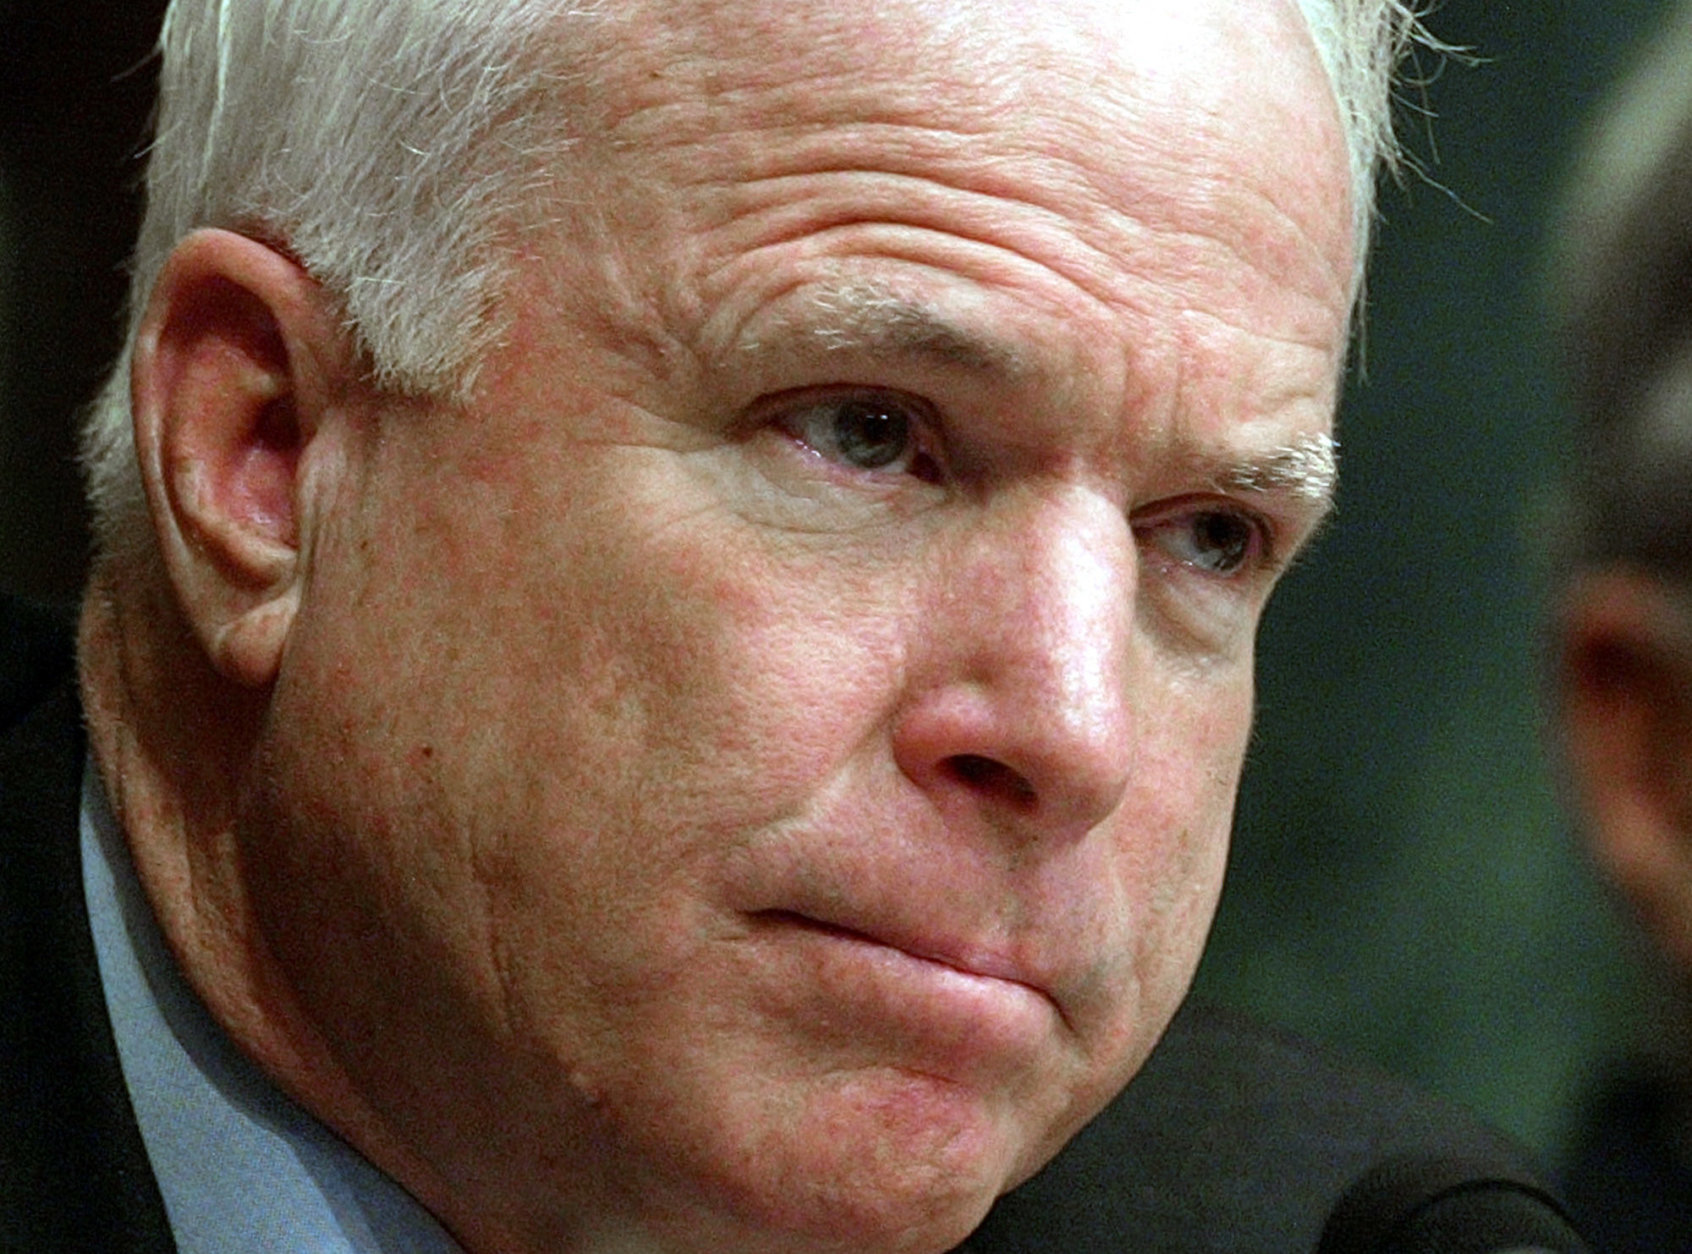 Senate Armed Services committee member Sen. John McCain, R-Ariz., listens to testimony Tuesday, May 11, 2004, in Washington, dealing with abuses to prisoners at Abu Ghraib, a U.S.-run prison complex near Baghdad, Iraq  (AP Photo/Ron Edmonds)